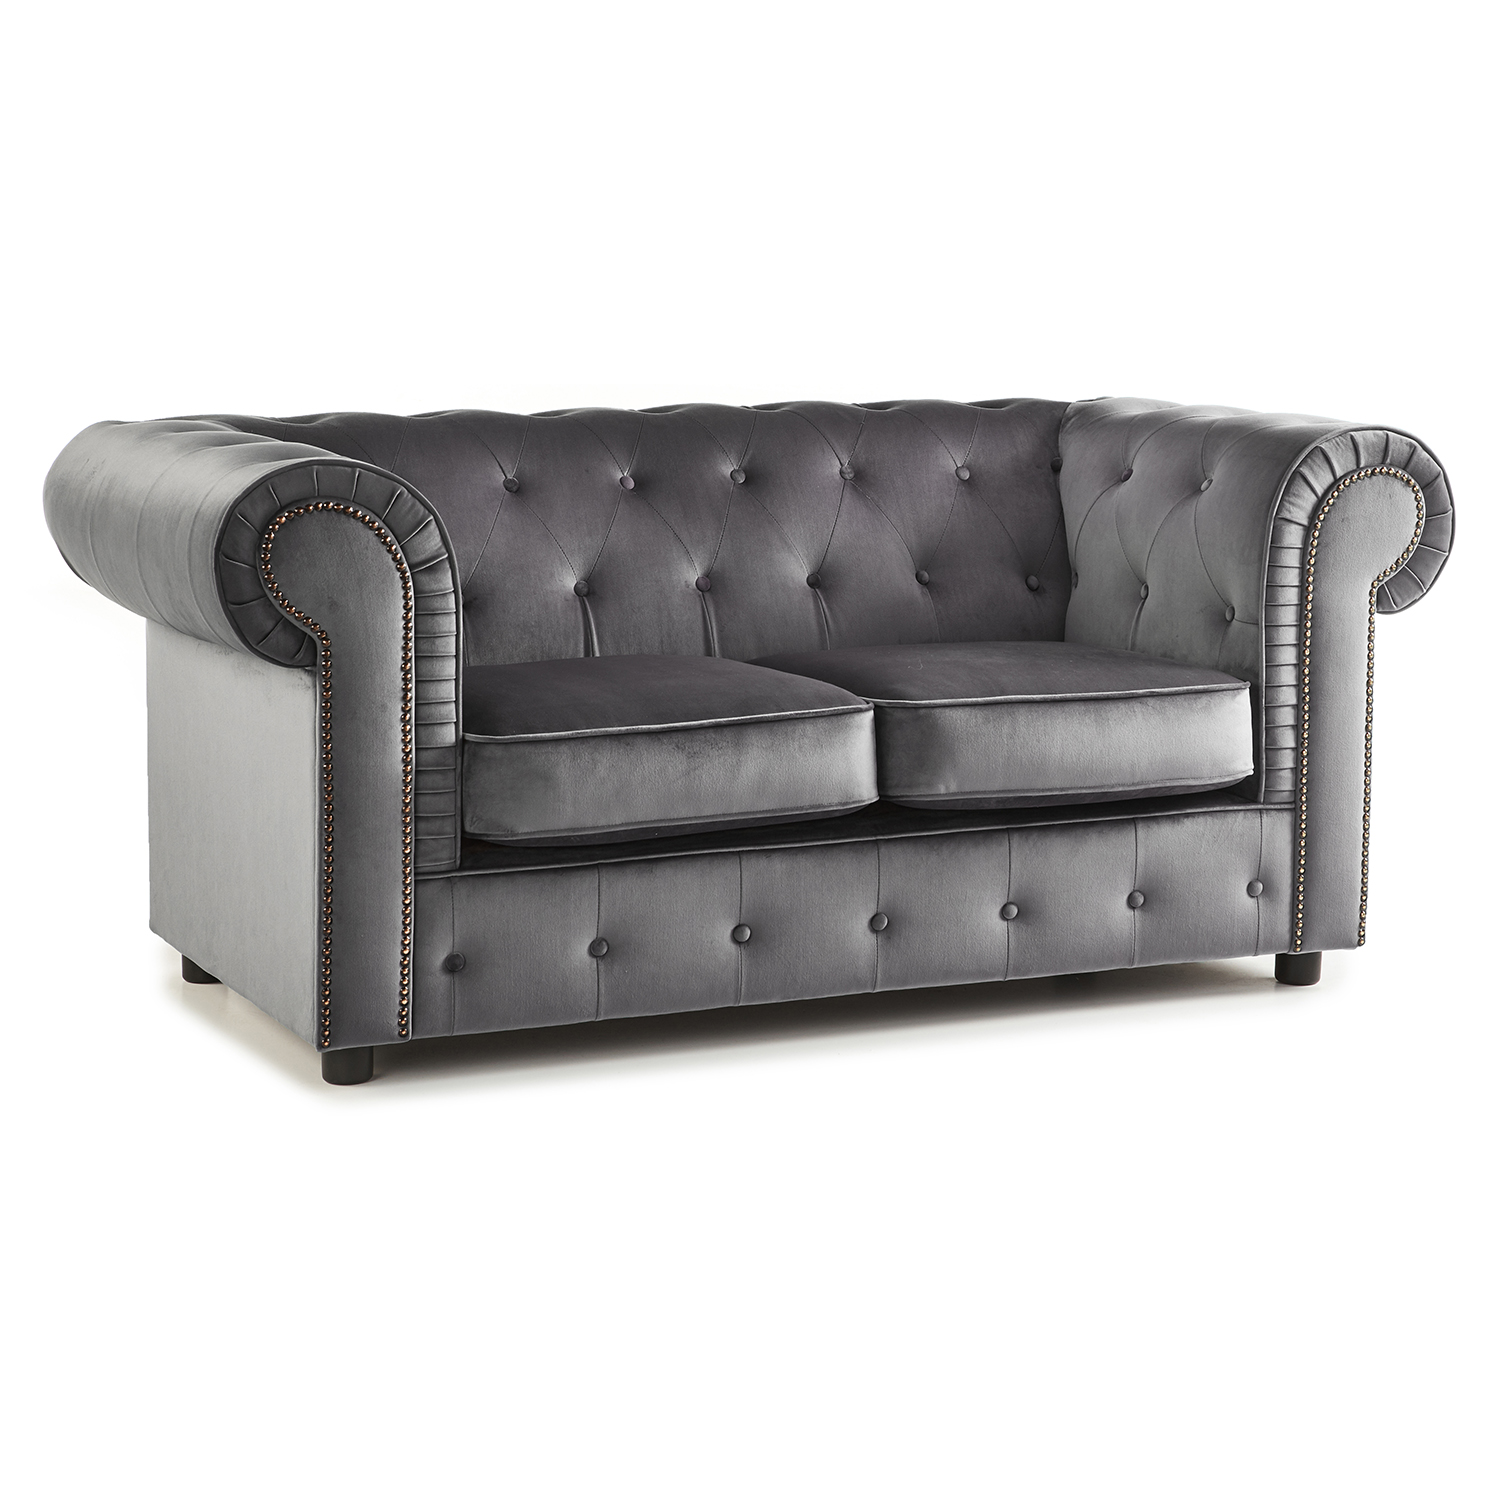 The Ashcroft Soft Velvet Chesterfield 2 Seater Sofa - Grey